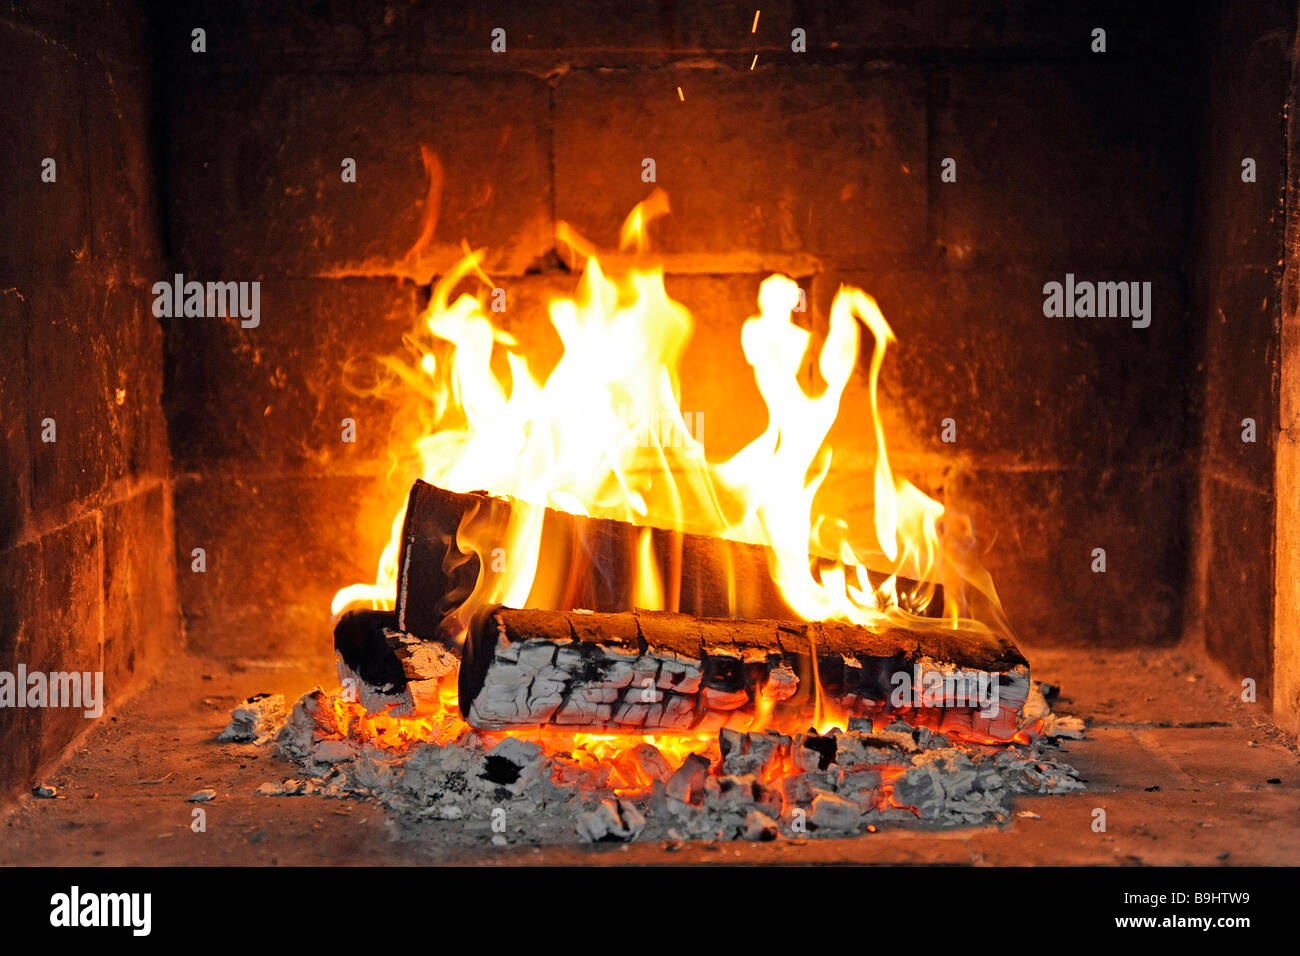 Kamin Feuer Kaminfeuer Stock Photos Kaminfeuer Stock Images Alamy